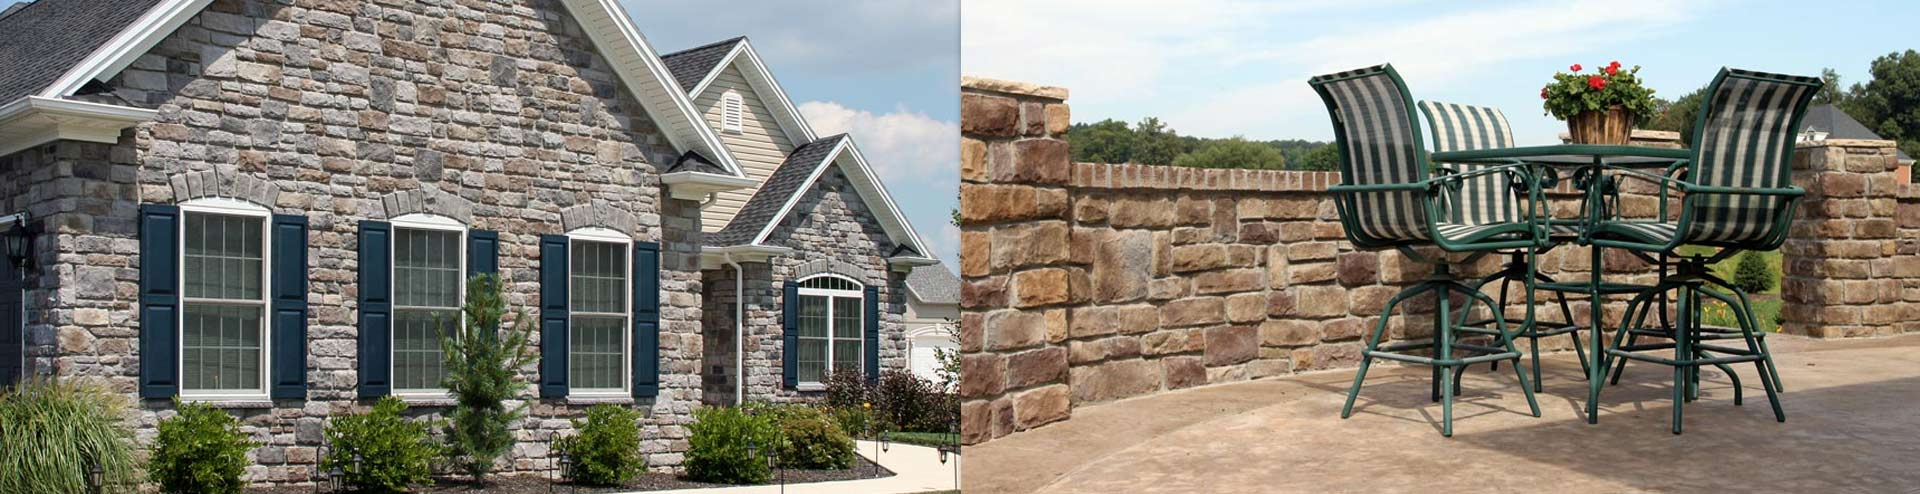 StoneCraft, manufactured stone veneer from Ambler Coal Company